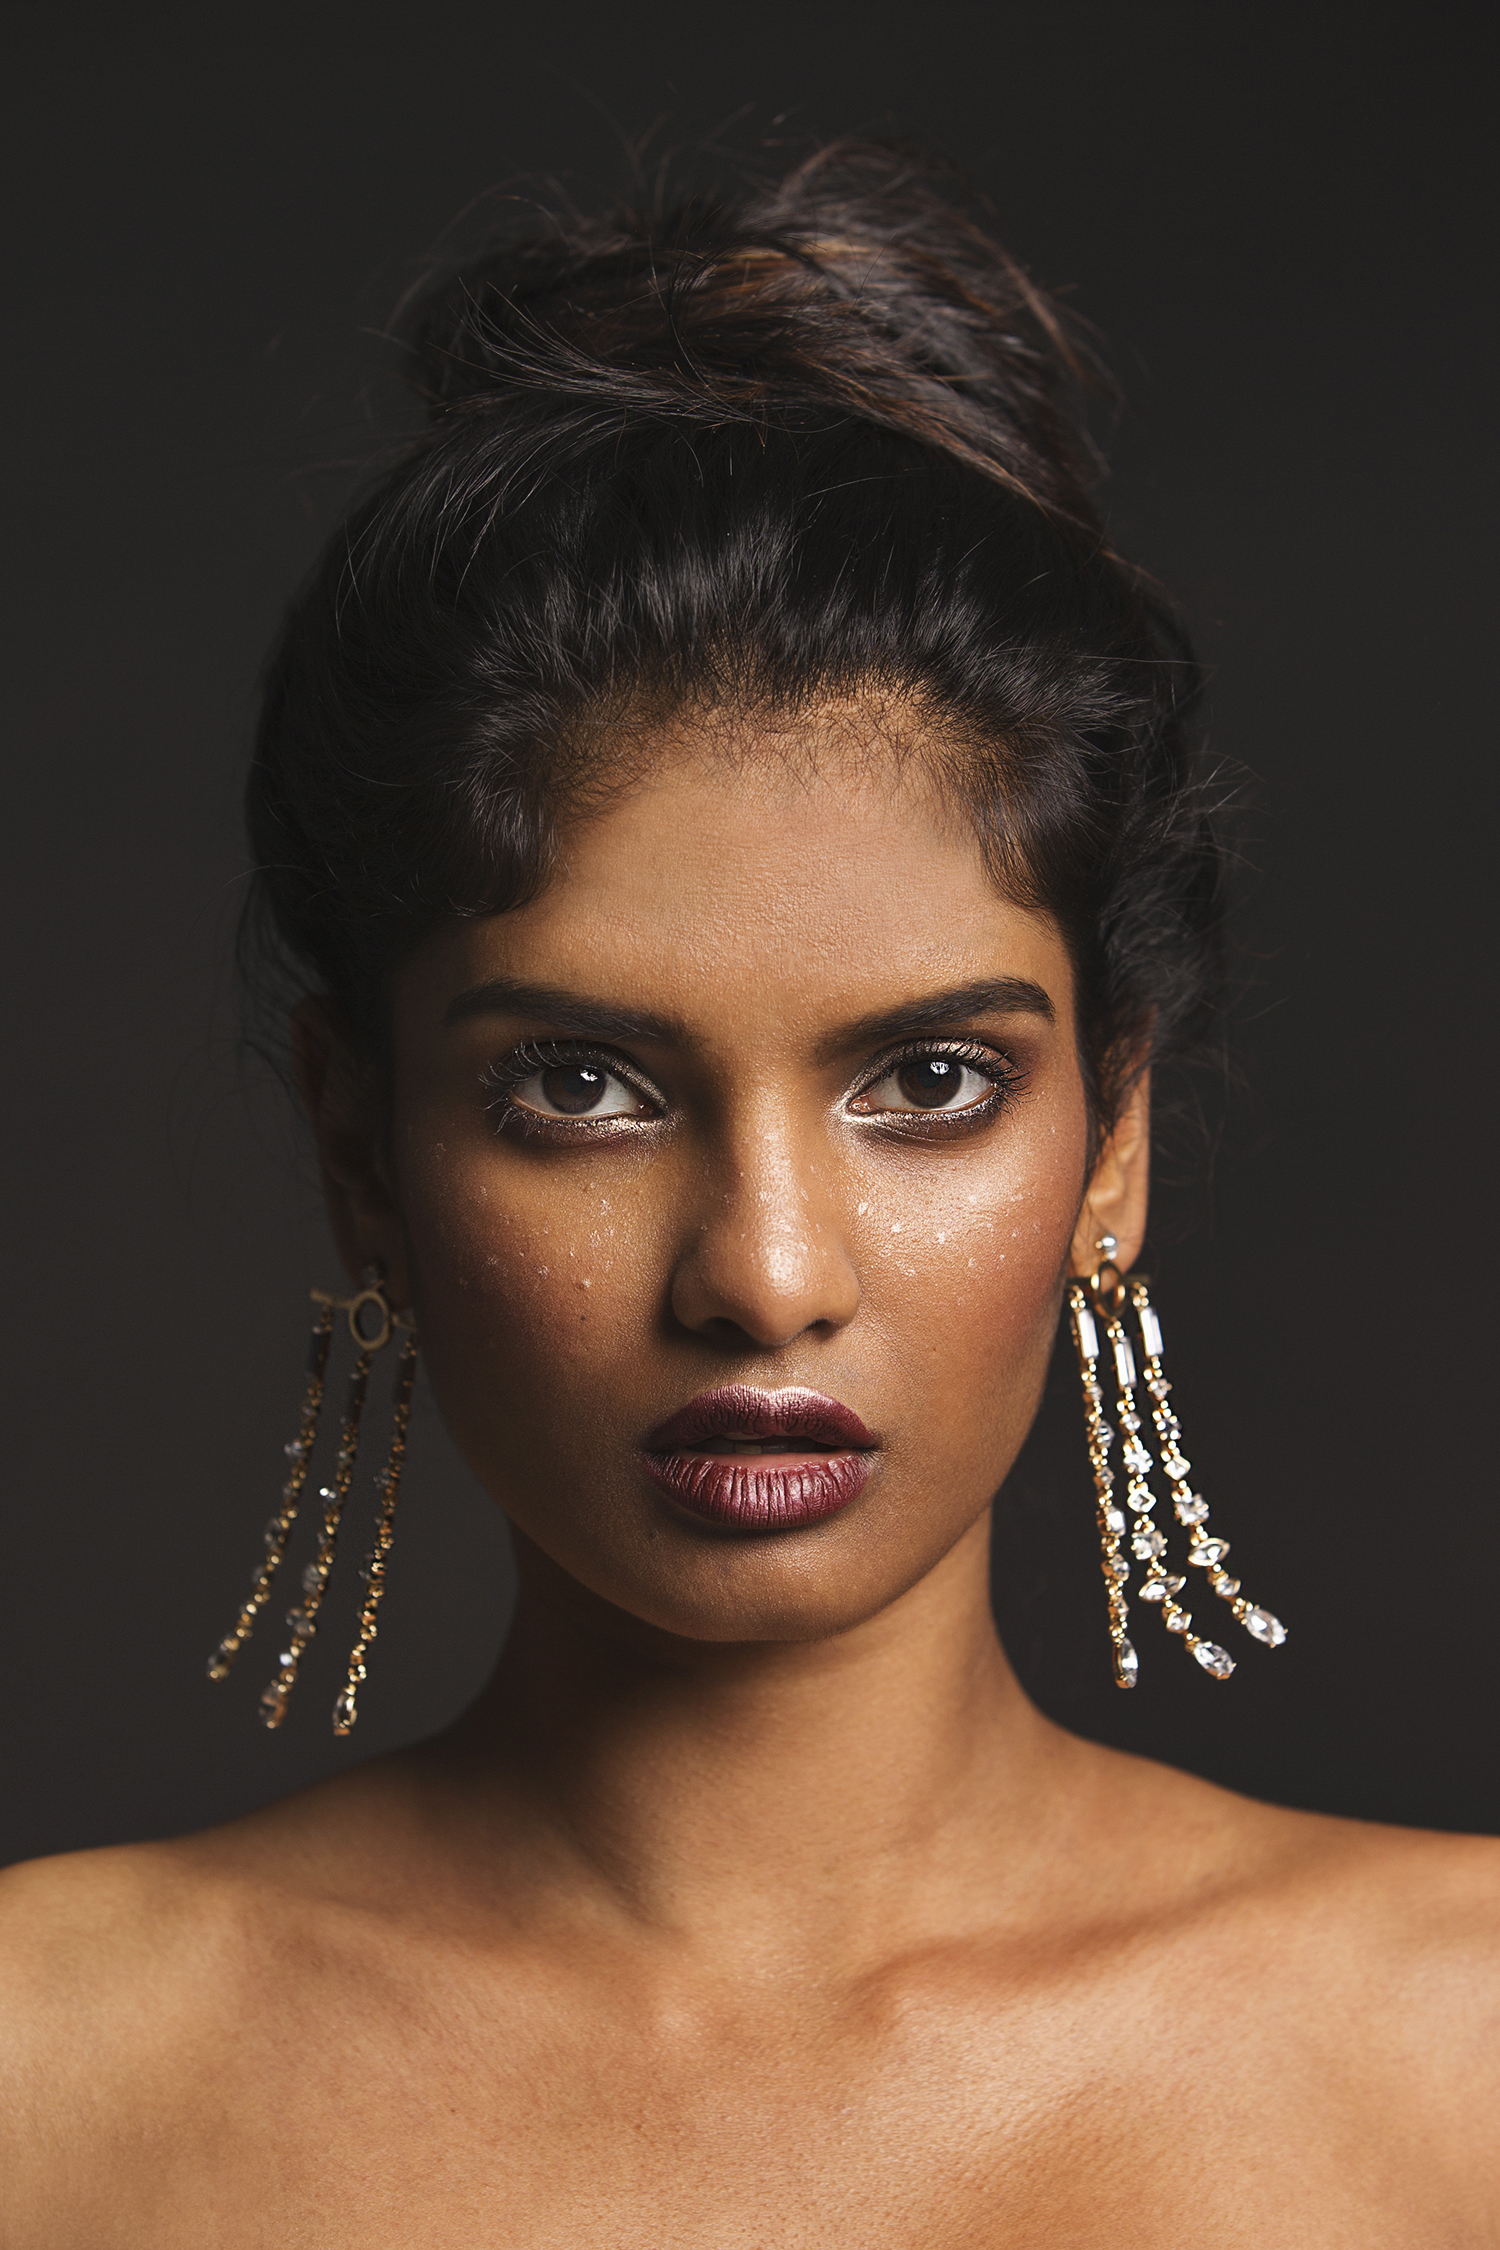 Seattle Fashion Jewelry Photographer in Studio with Priya from Heffner Management